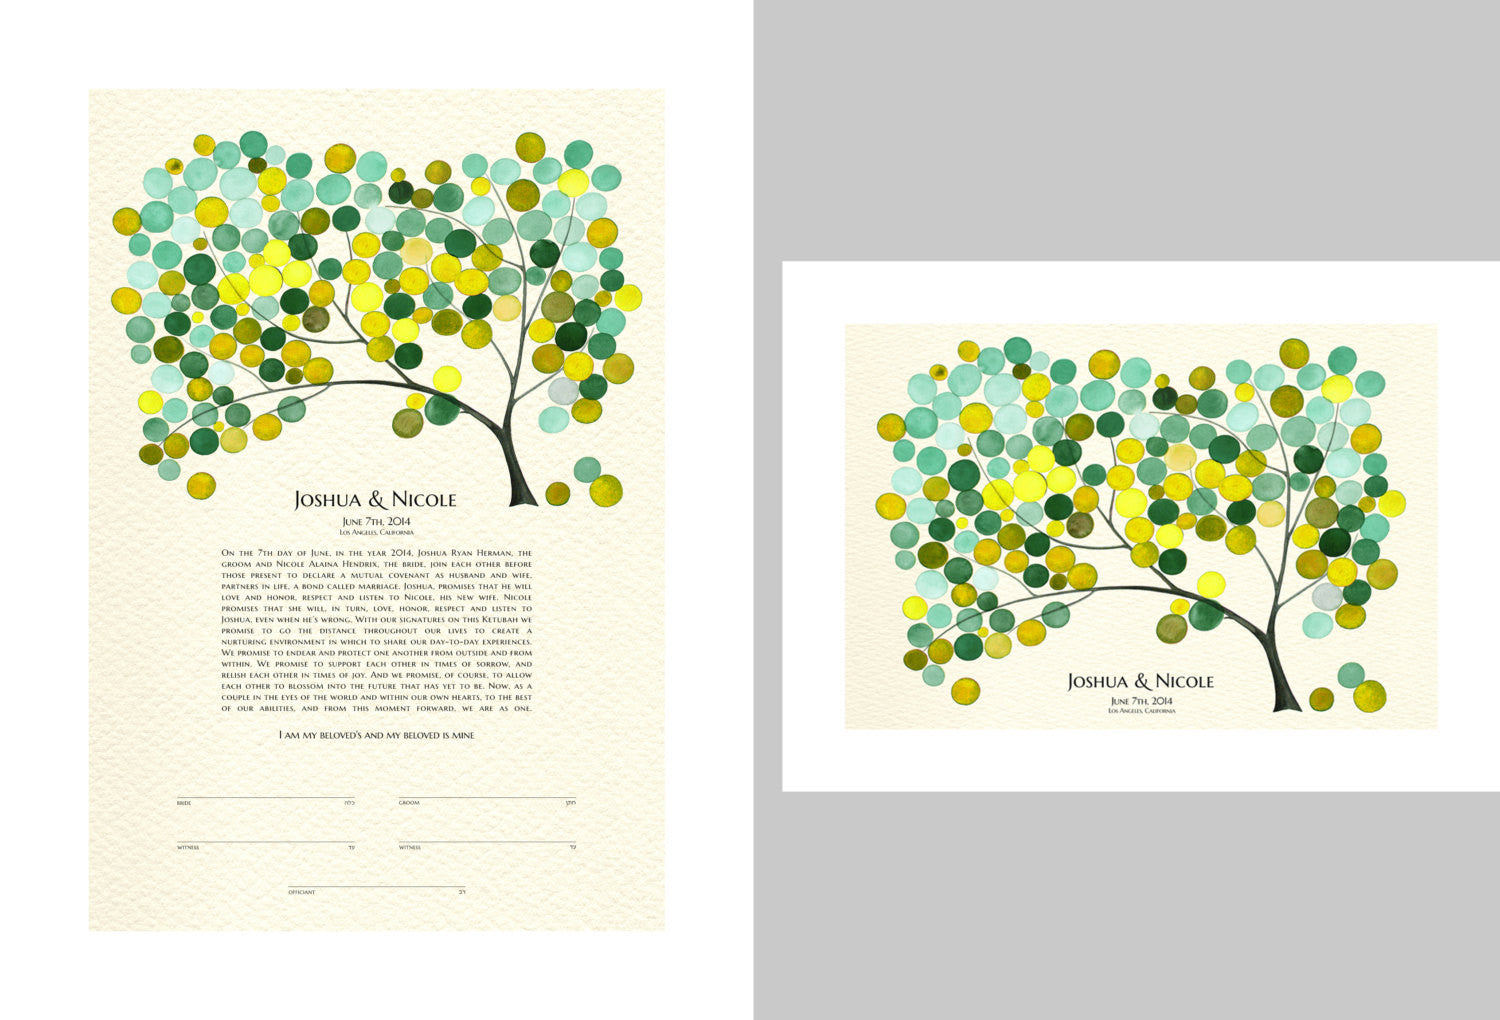 Matching Ketubah & Guestbook art Print - Tree of Life Modern Ketubah art Print - Jewish marriage certificate and guestbook - SET